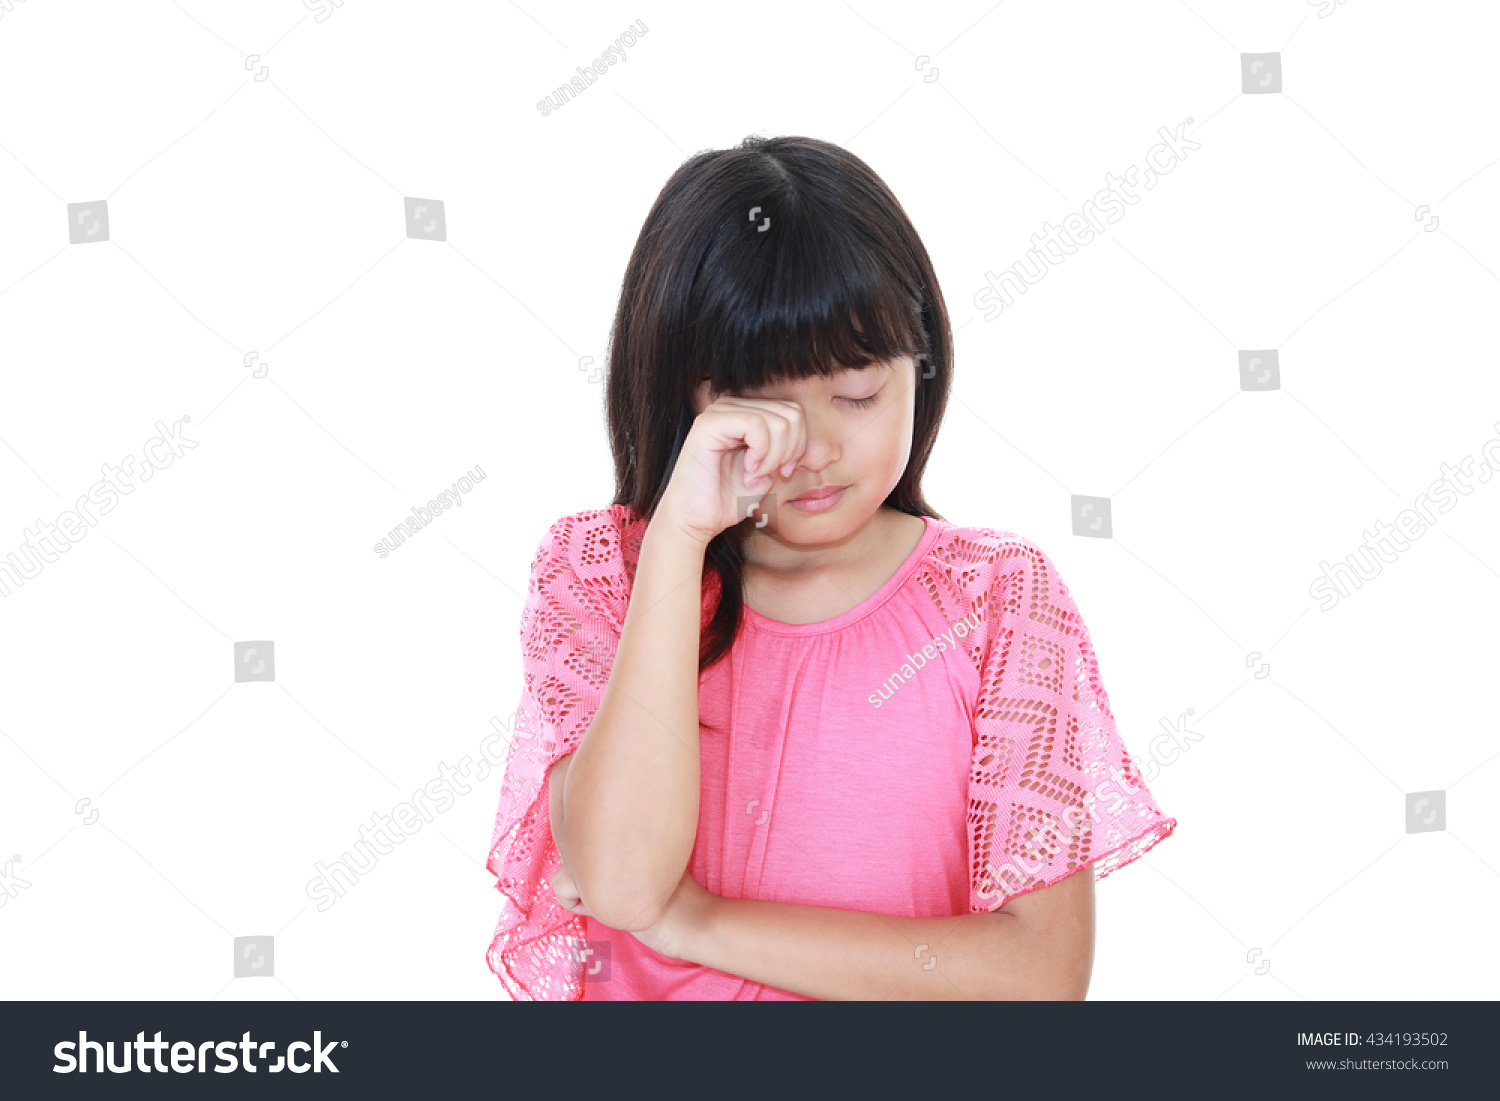 crying woman stock photo crying girl stock photo 434193502 shutterstock 1671